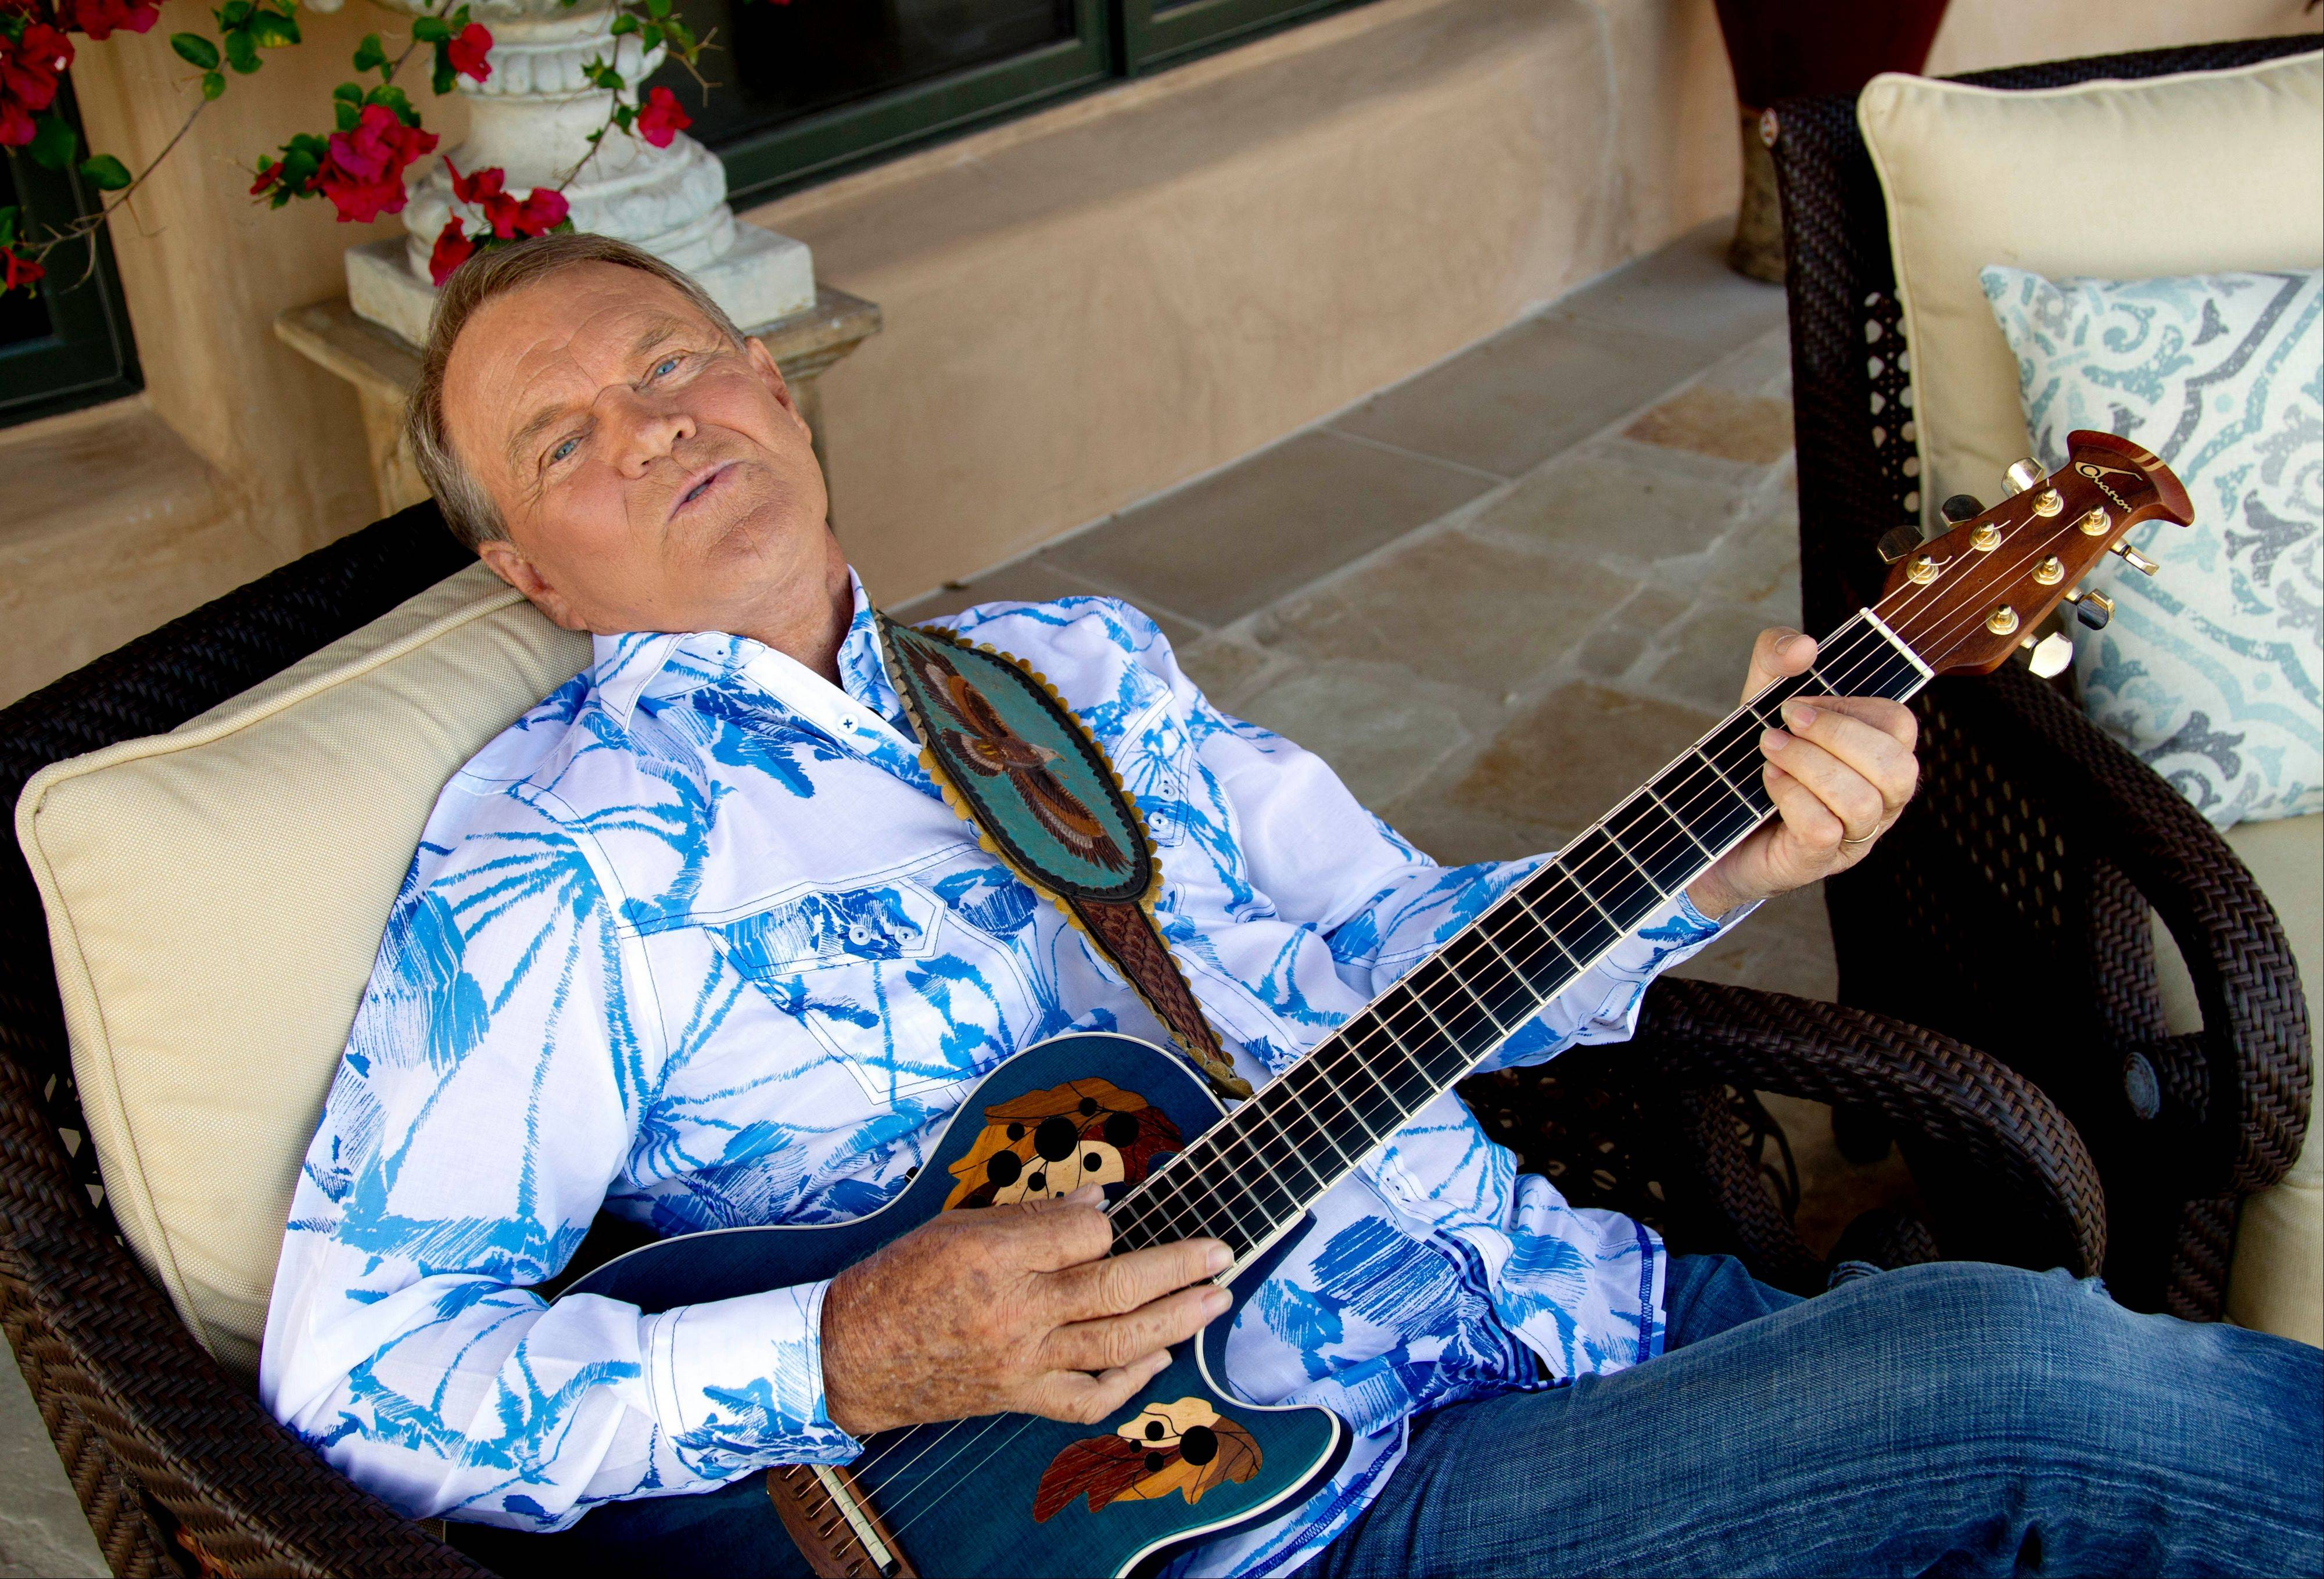 Musician Glen Campbell, who was diagnosed with Alzheimer's disease, is canceling his tour of Australia and New Zealand with Kenny Rogers next month for health reasons.